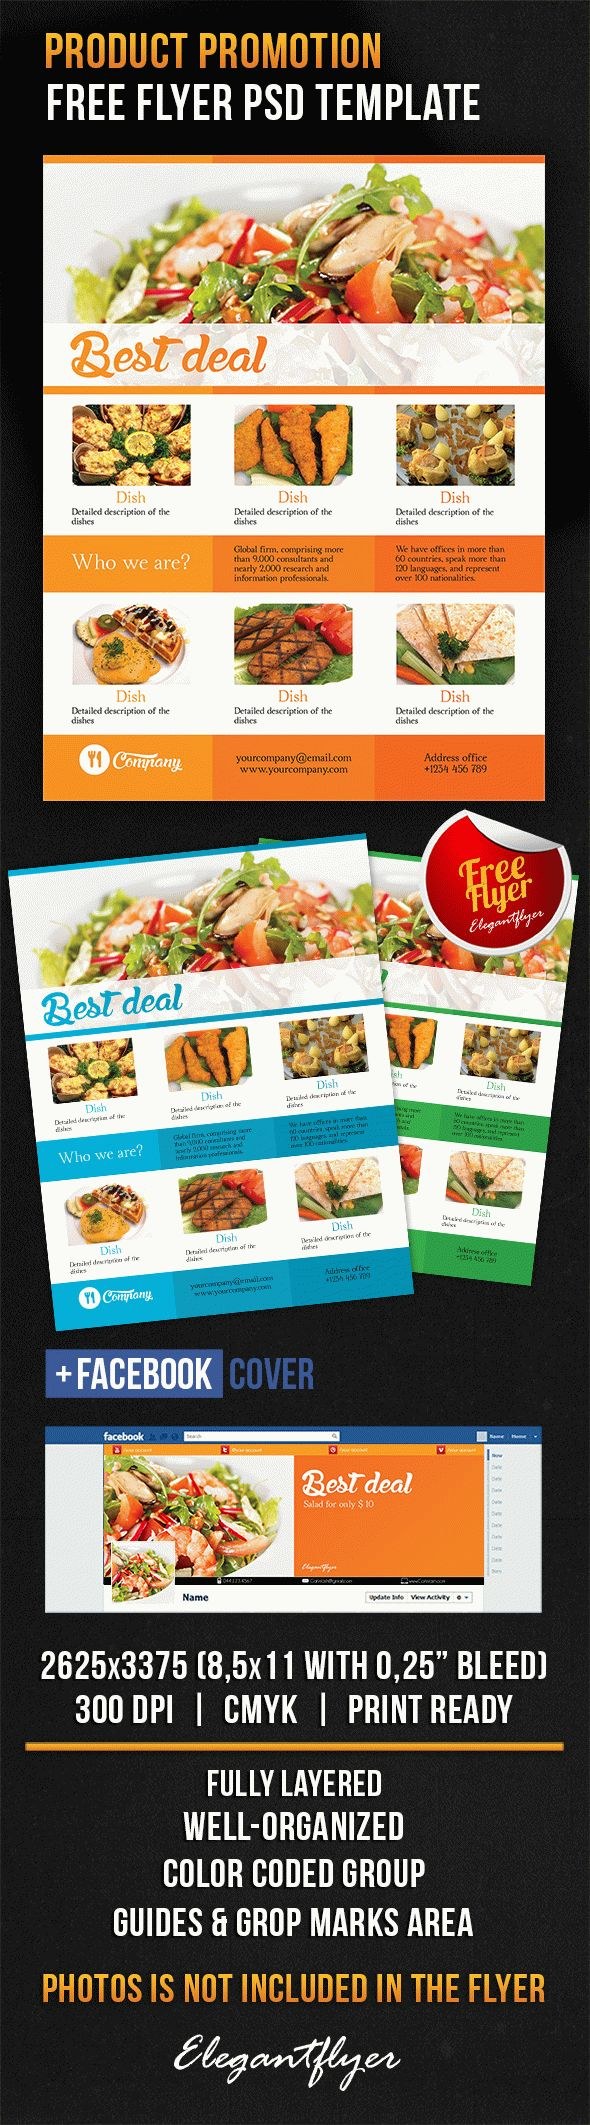 Product Promotion – Free Flyer PSD Template + Facebook Cover